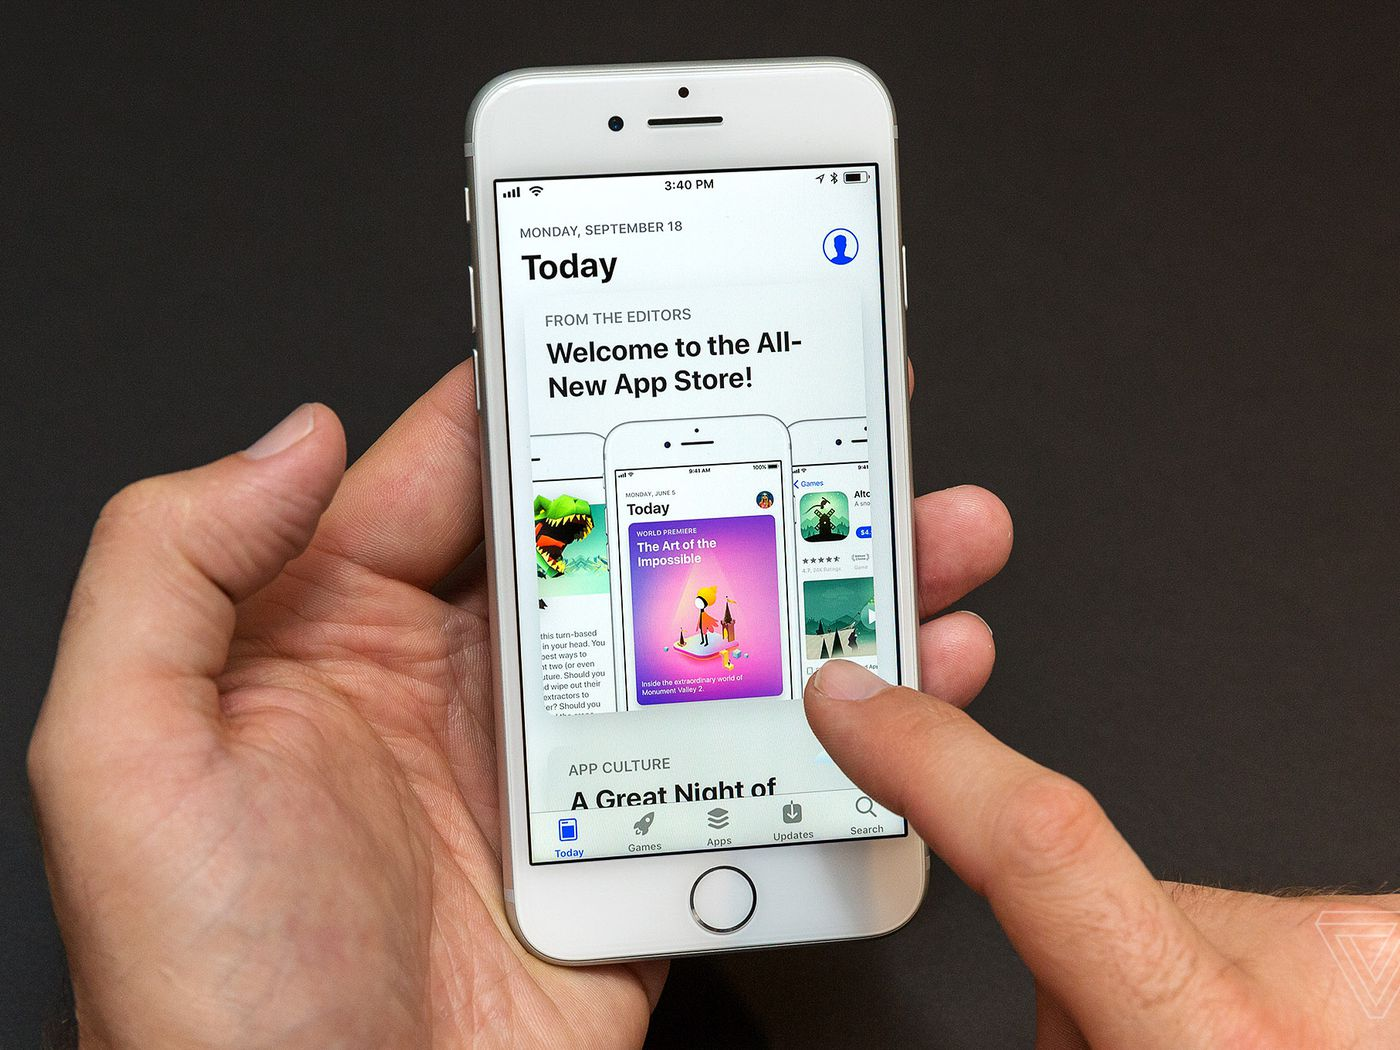 Apple makes more revenue through services than major product